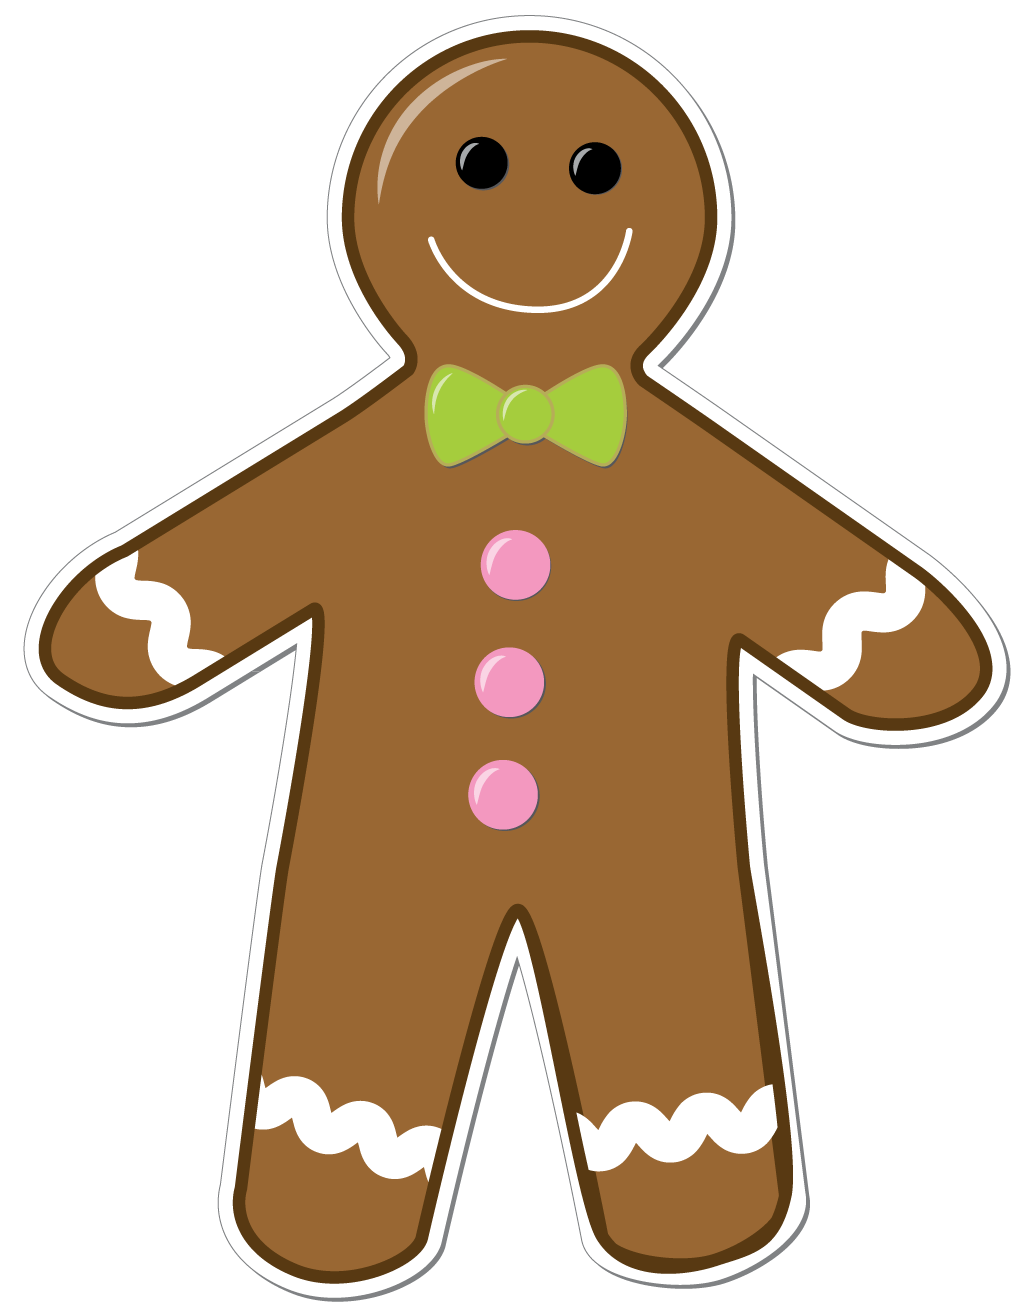 Displaying 18 Images For Gingerbread Man-Displaying 18 Images For Gingerbread Man Border-2